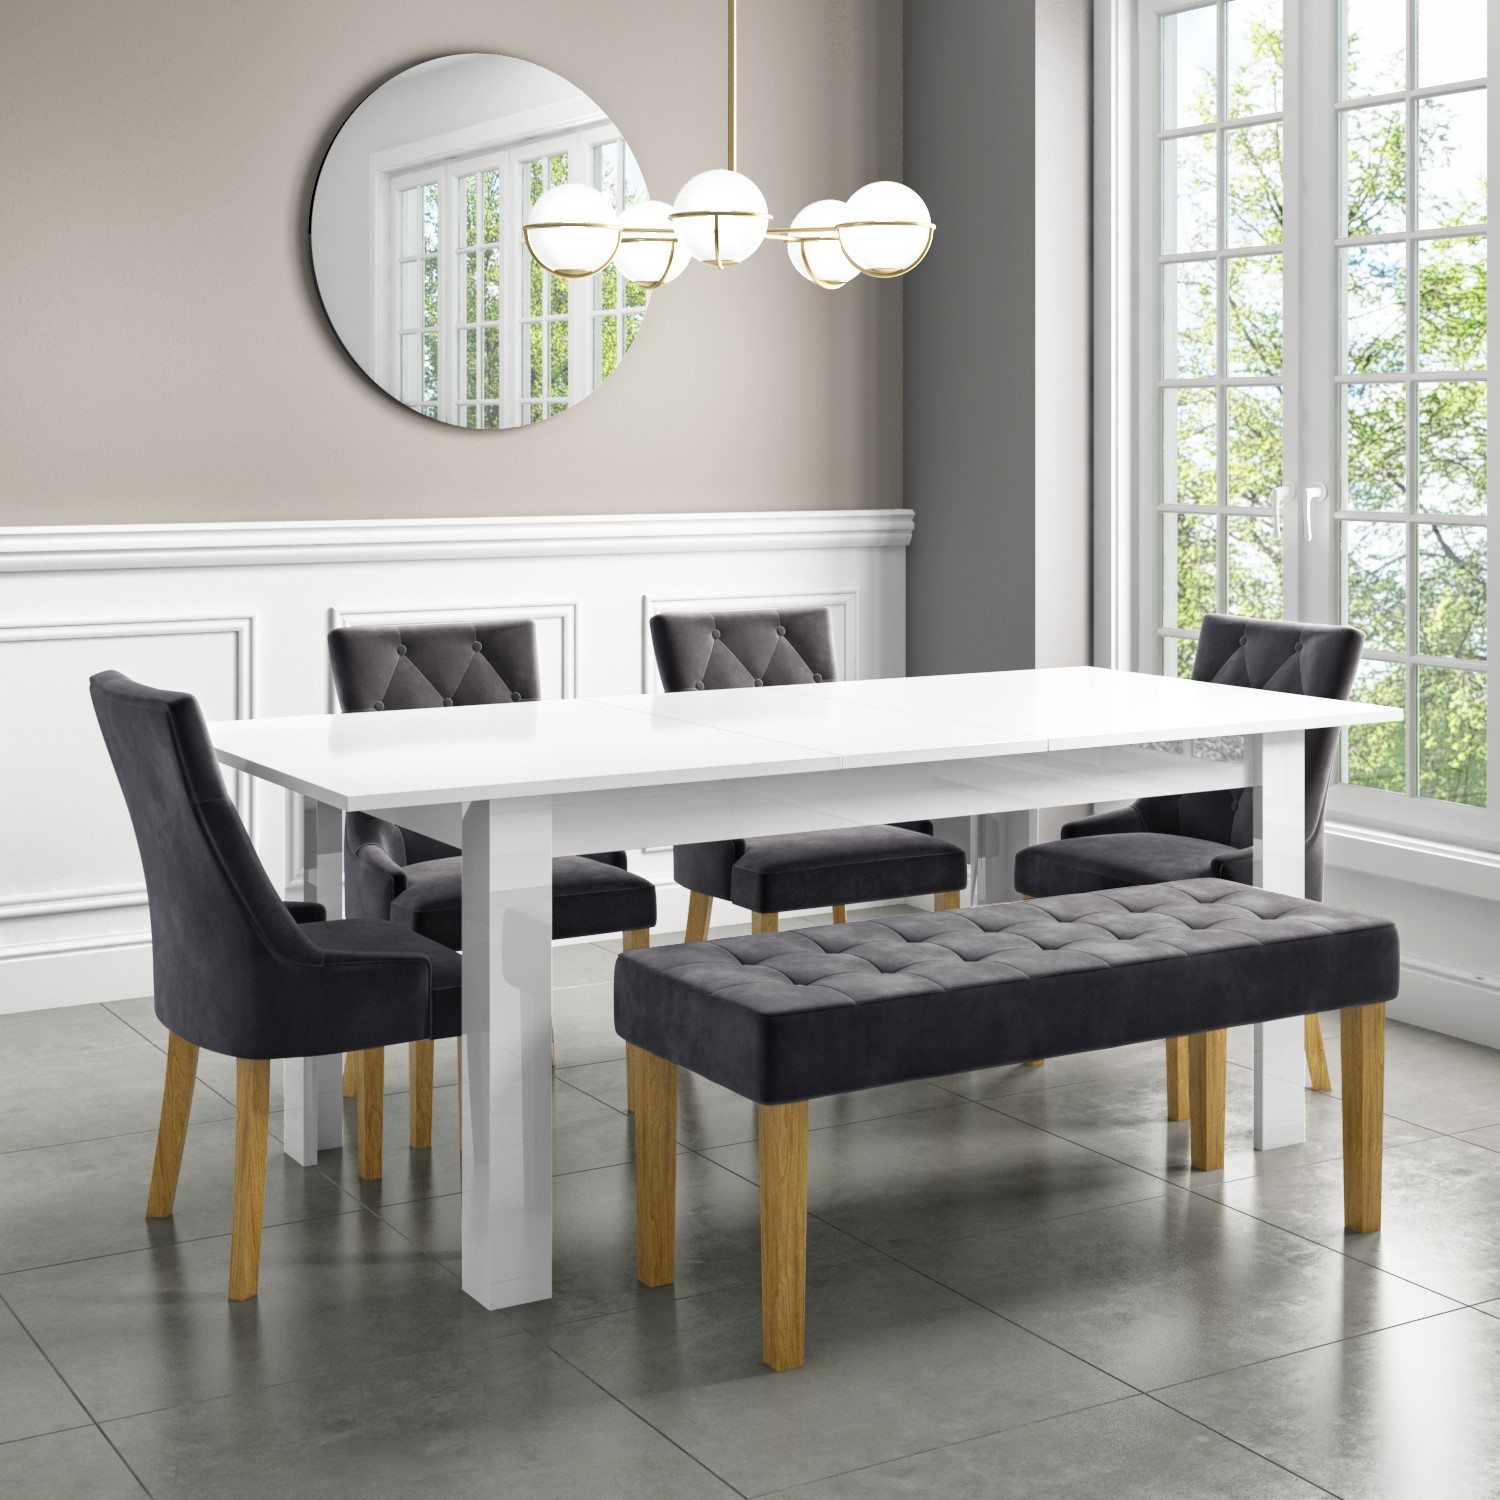 White Extendable Dining Table with High Gloss Finish   9 Seater   Vivienne